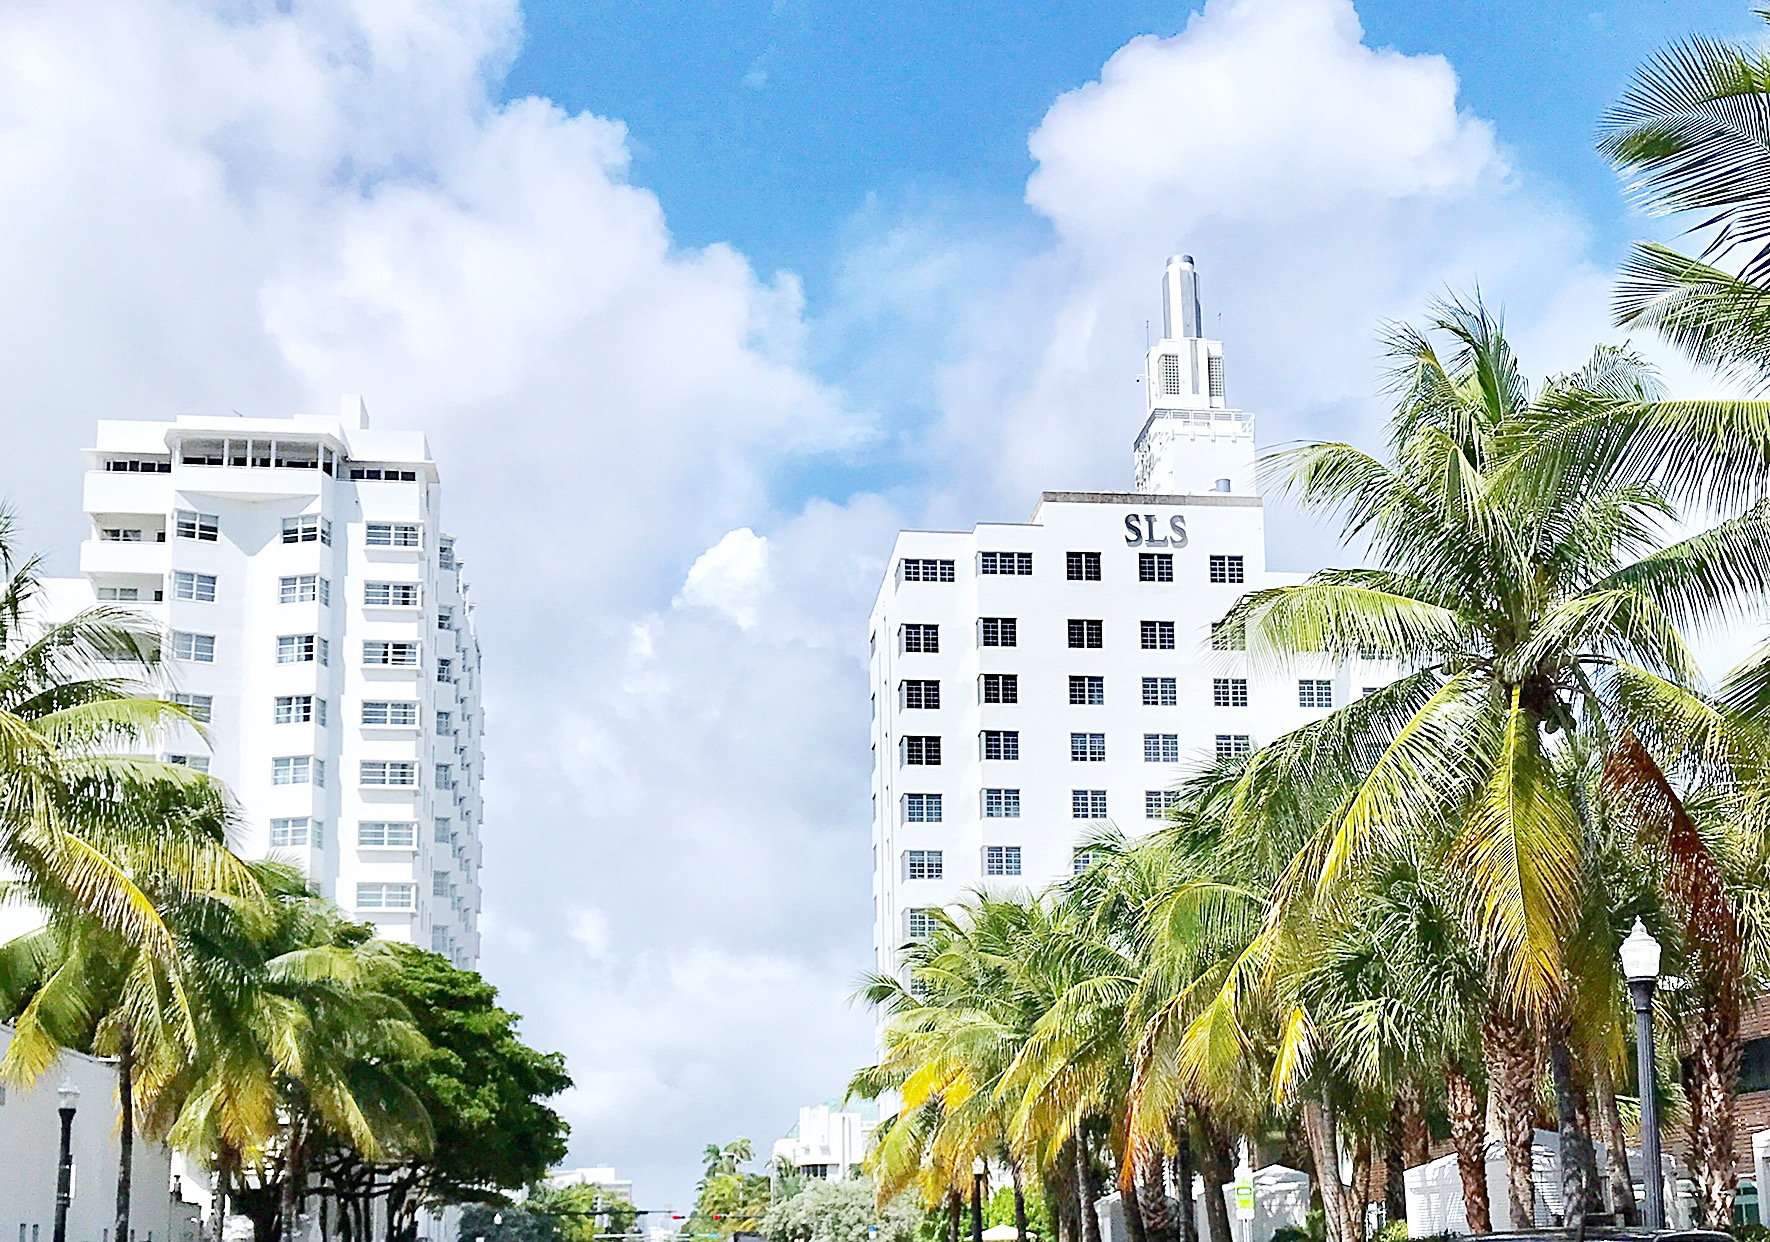 SLS Hotel South Beach, Girls getaway guide,south beach Miami, south beach boutique hotel